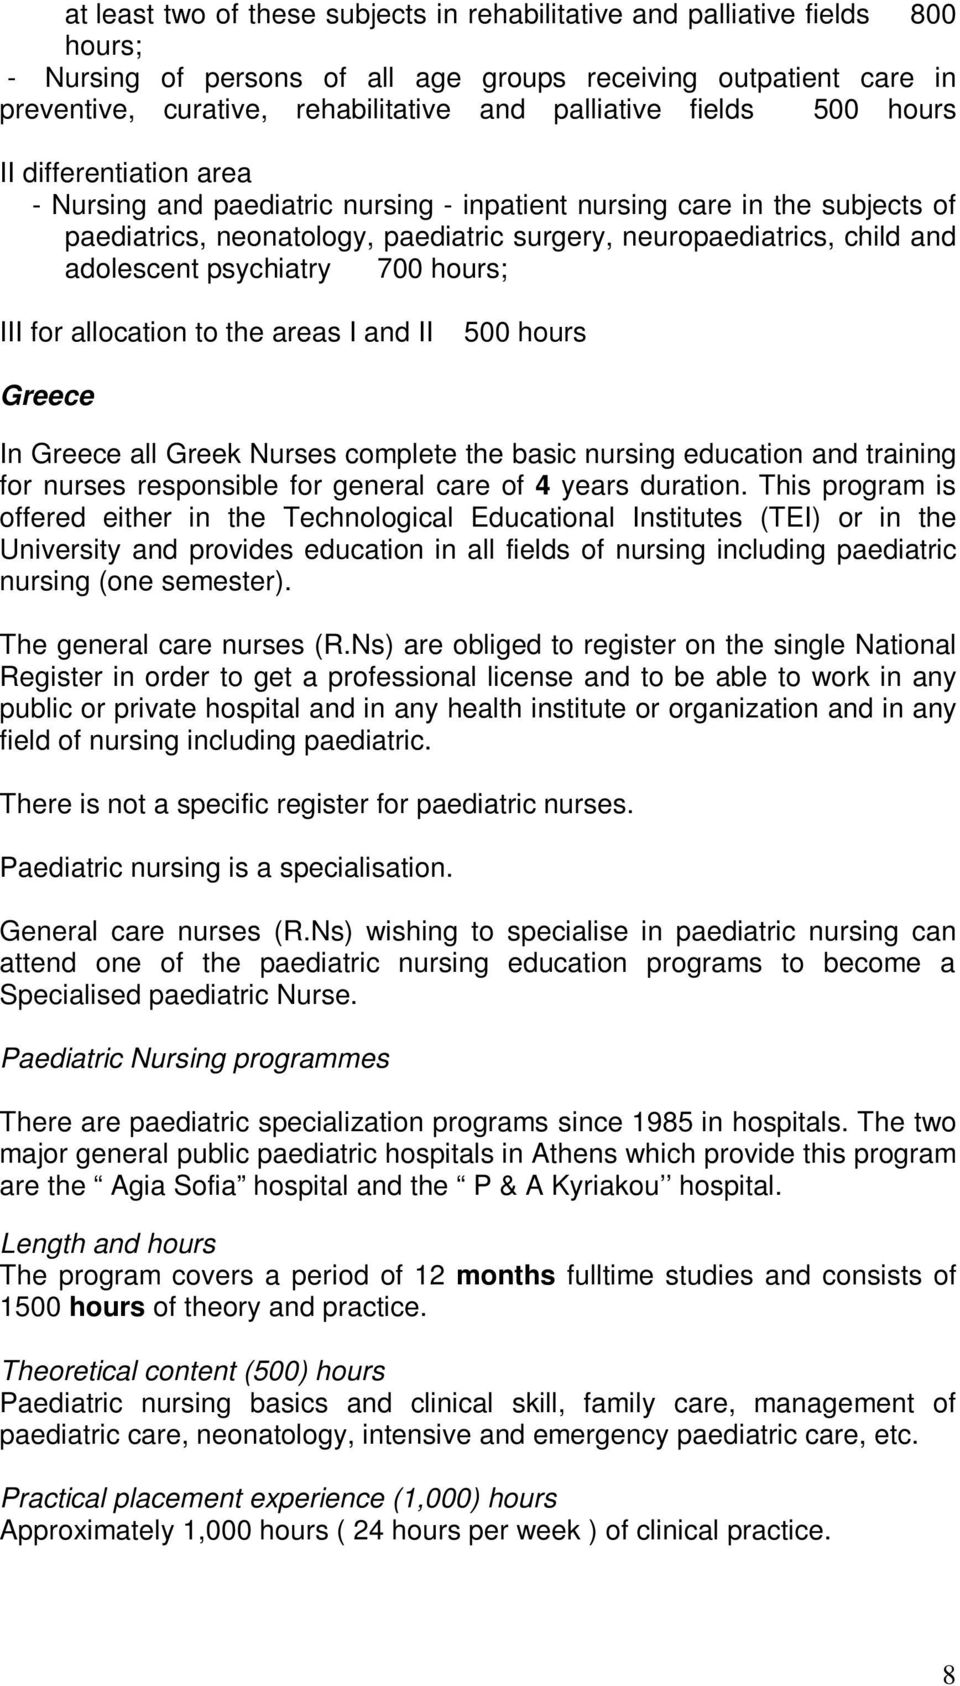 and adolescent psychiatry 700 hours; III for allocation to the areas I and II 500 hours Greece In Greece all Greek Nurses complete the basic nursing education and training for nurses responsible for